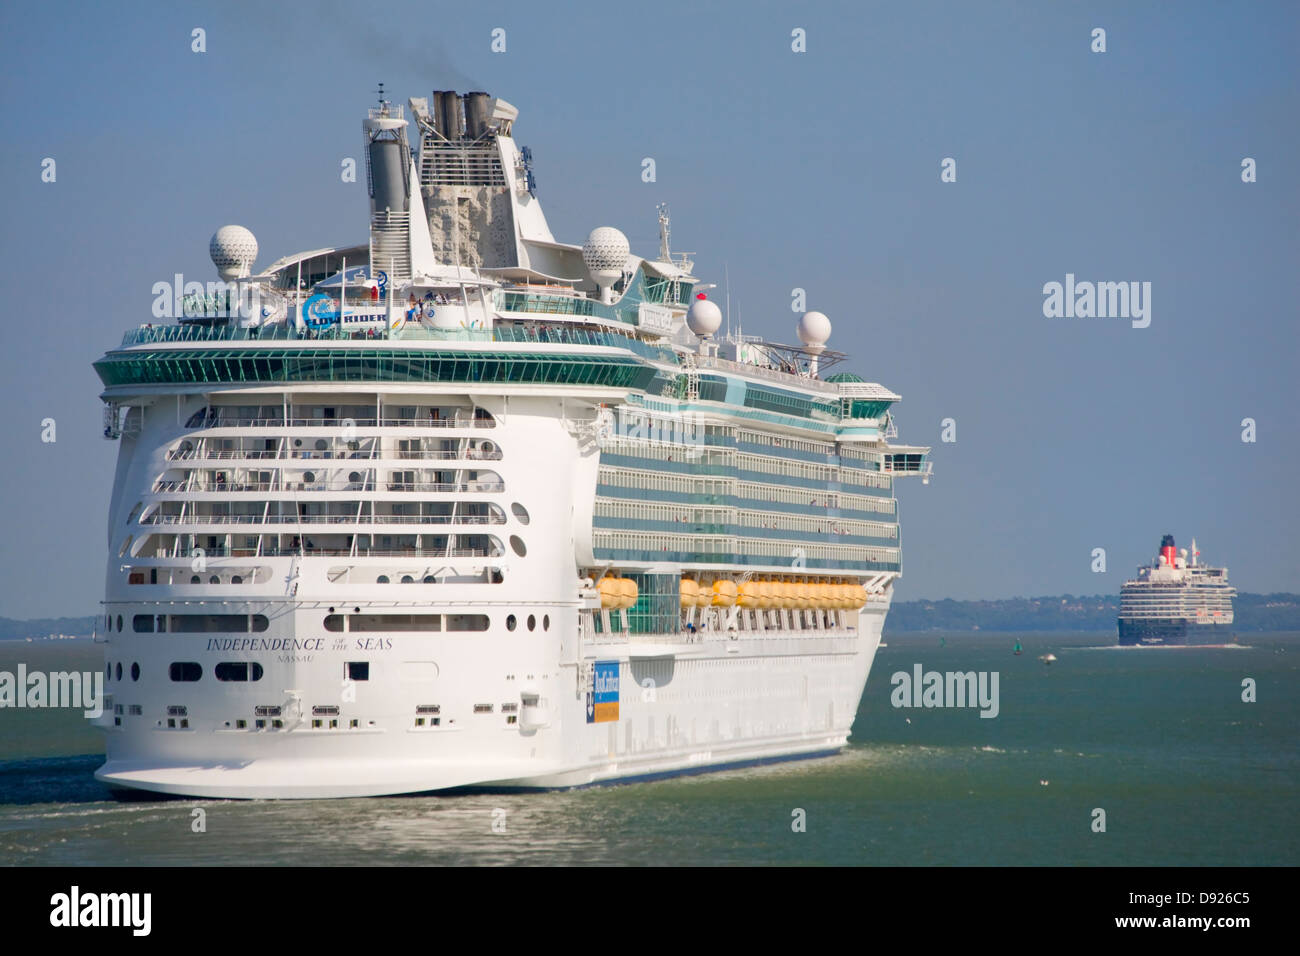 Independence of the Seas cruise ship following the Queen Elizabeth out of the Solent, Southampton - Stock Image